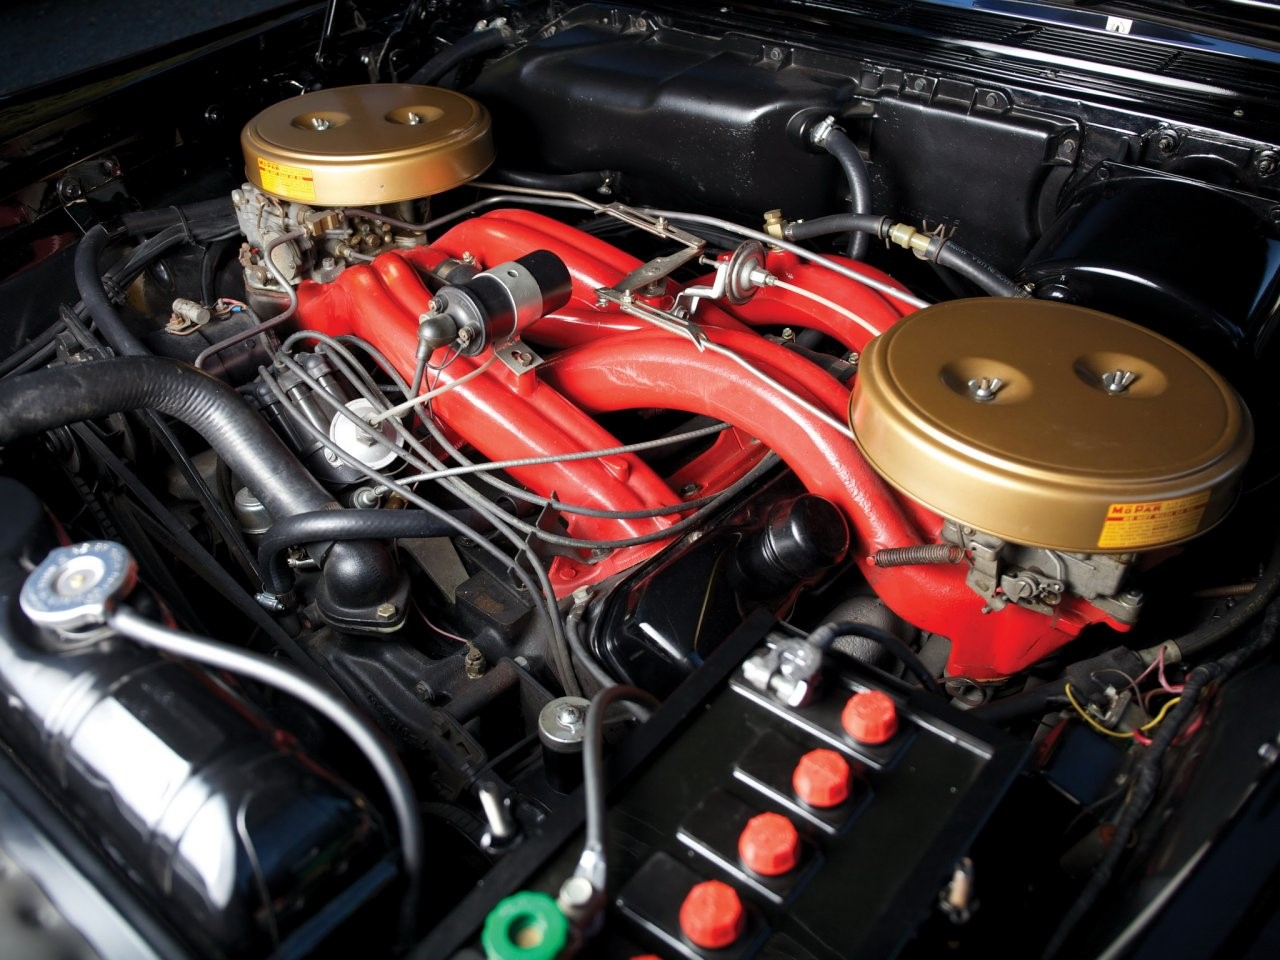 6.8 litre Wedge-head V8 5